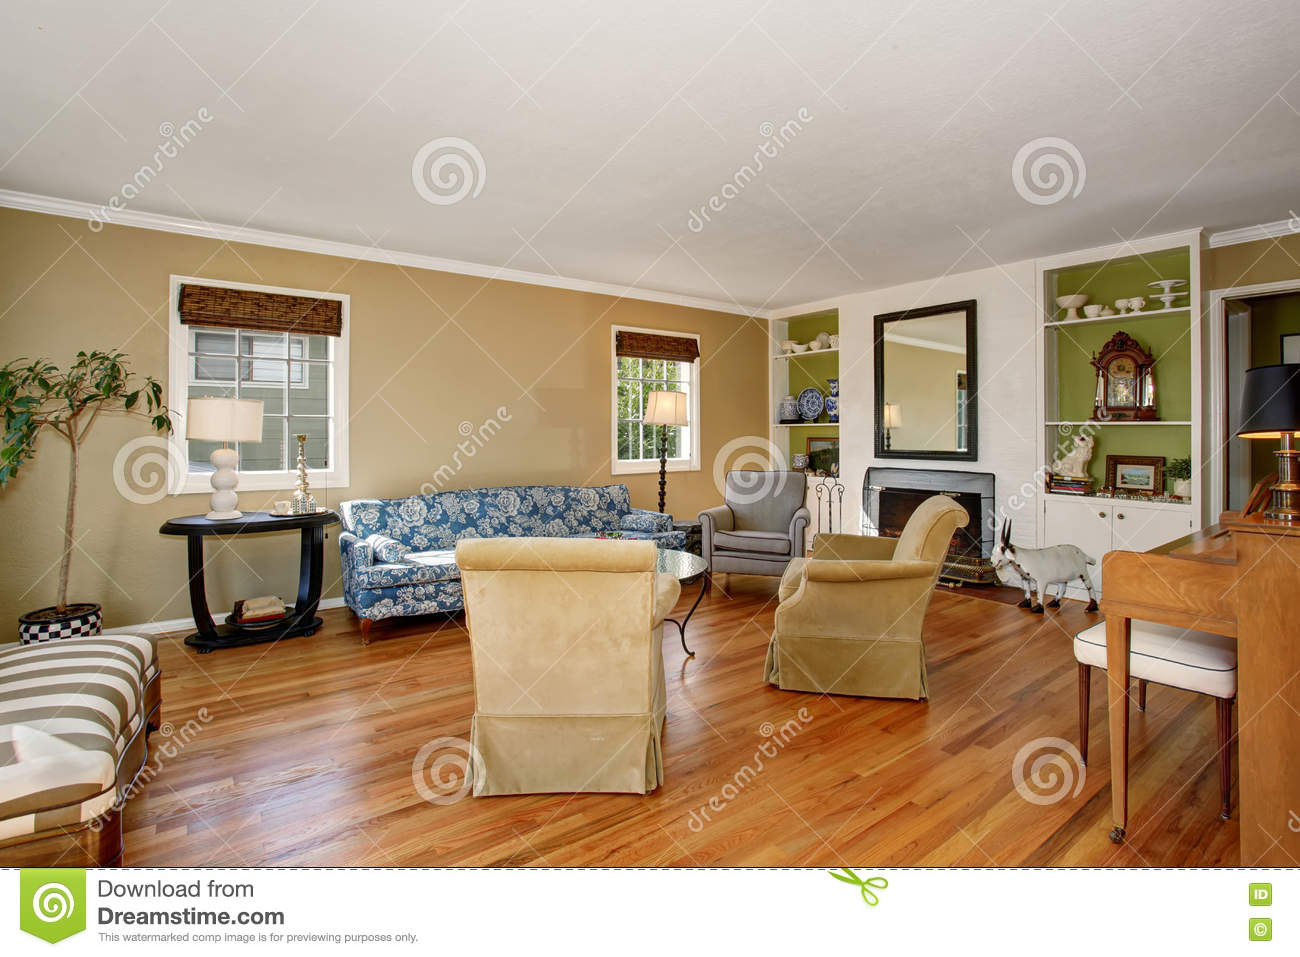 Classic american living room interior beige and green for American house interior decoration